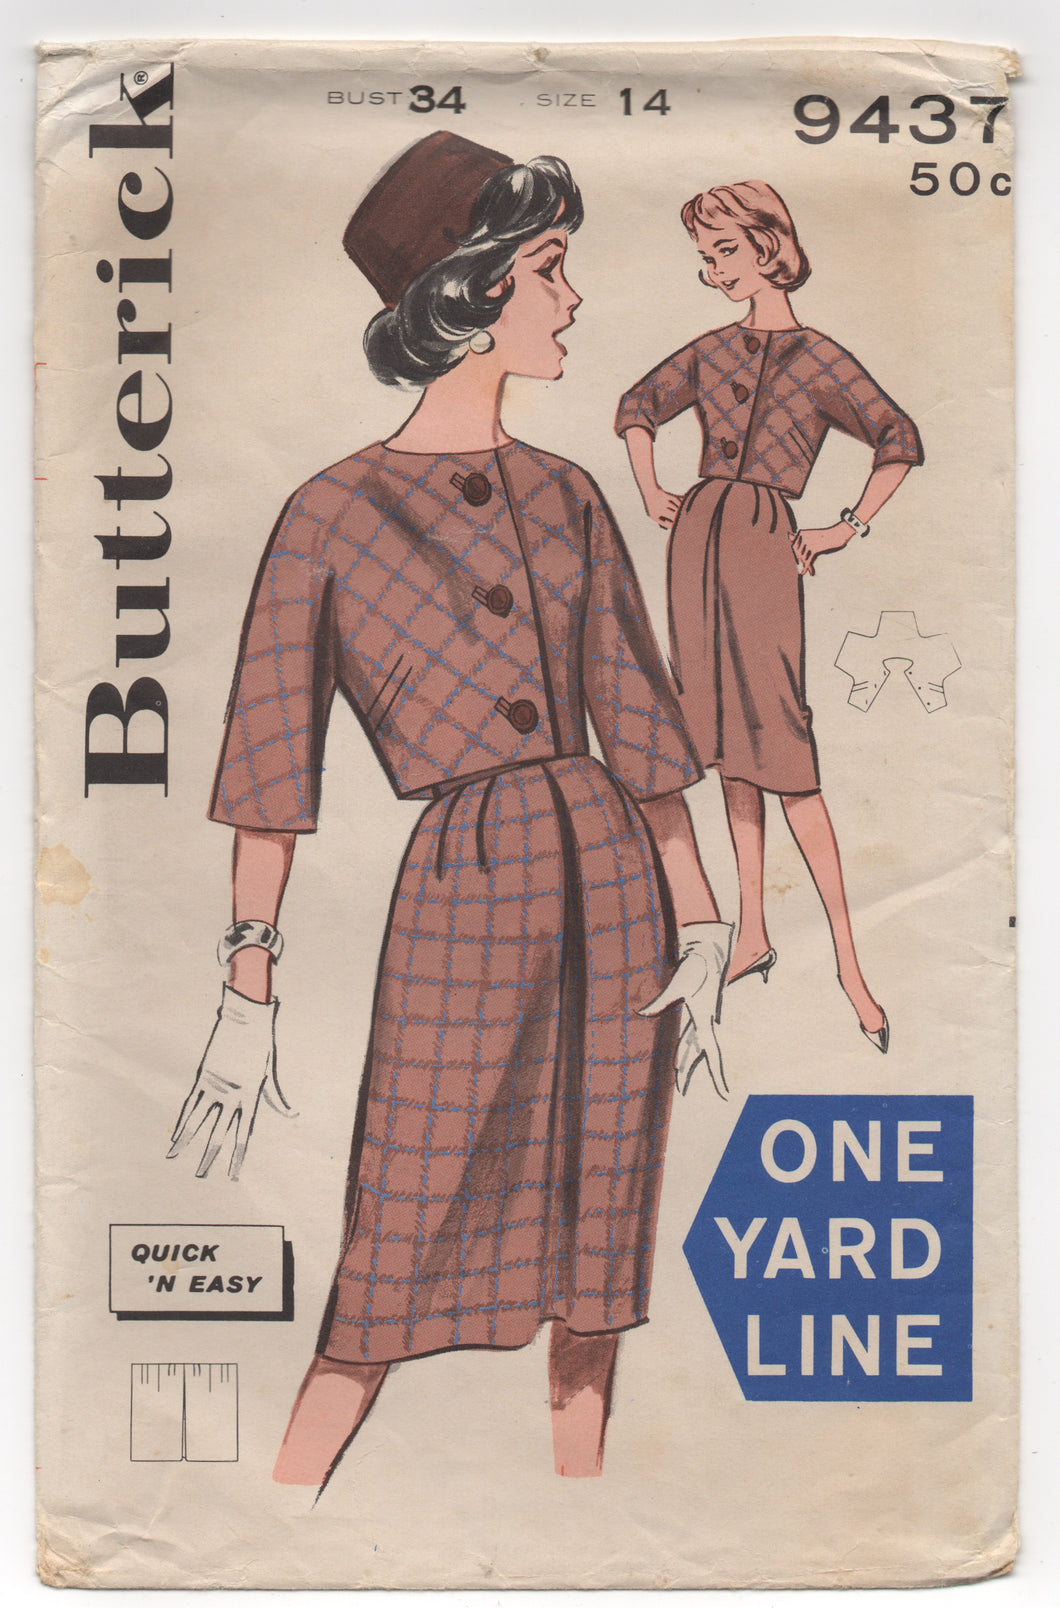 1960's Butterick Jacket with 3/4 Sleeves and One yard Skirt - Bust 34